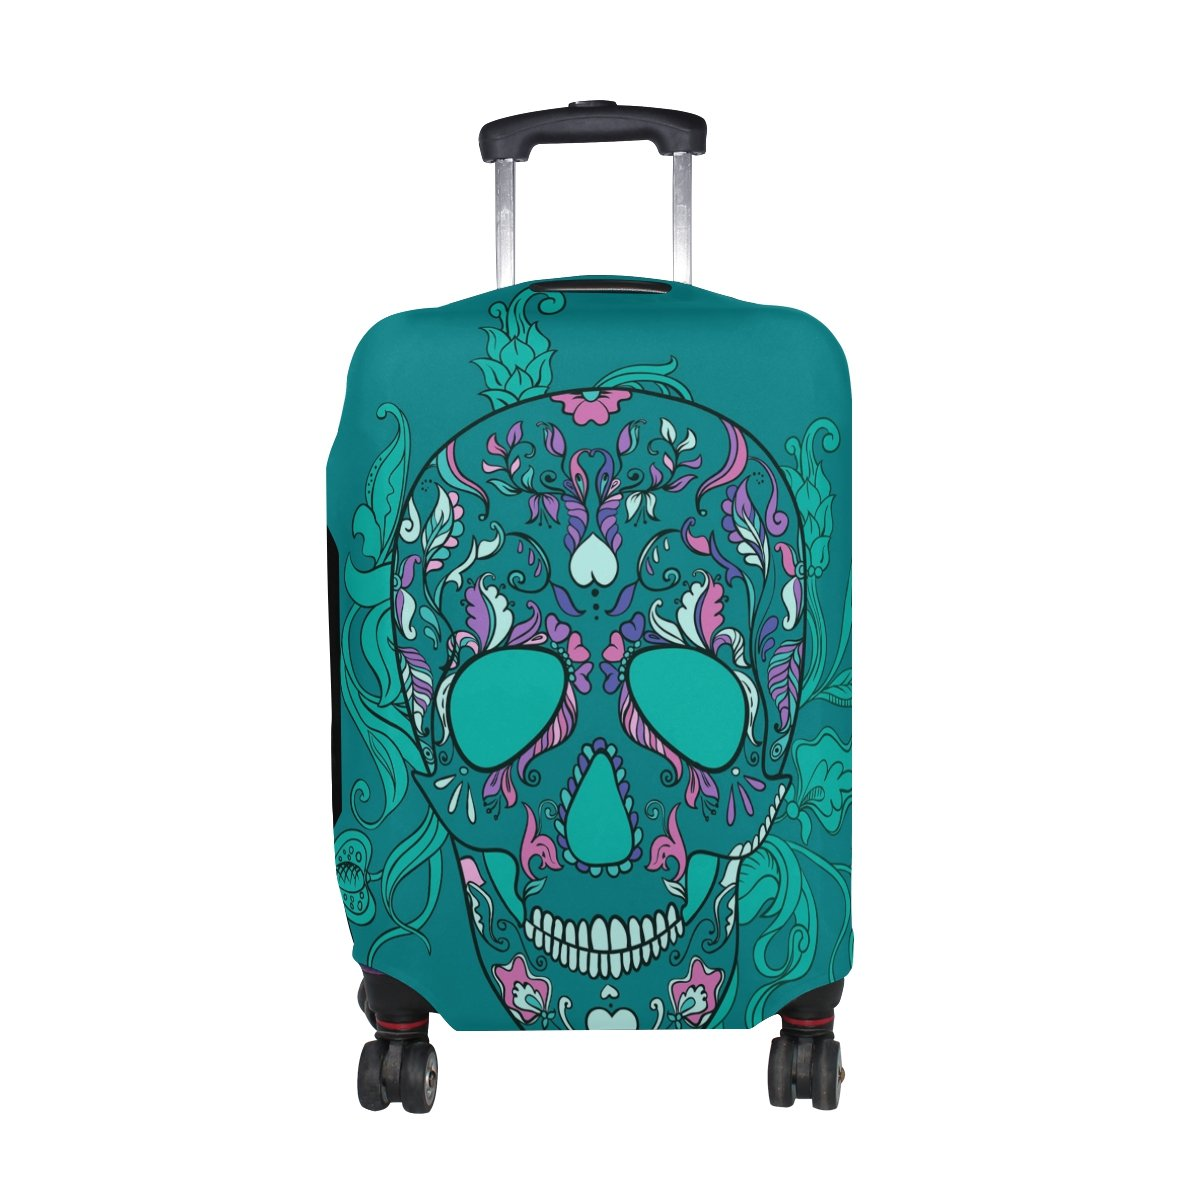 LORVIES Vector Sugar Skull With Ornament Print Travel Luggage Protective Covers Washable Spandex Baggage Suitcase Cover - Fits 18-32 Inch